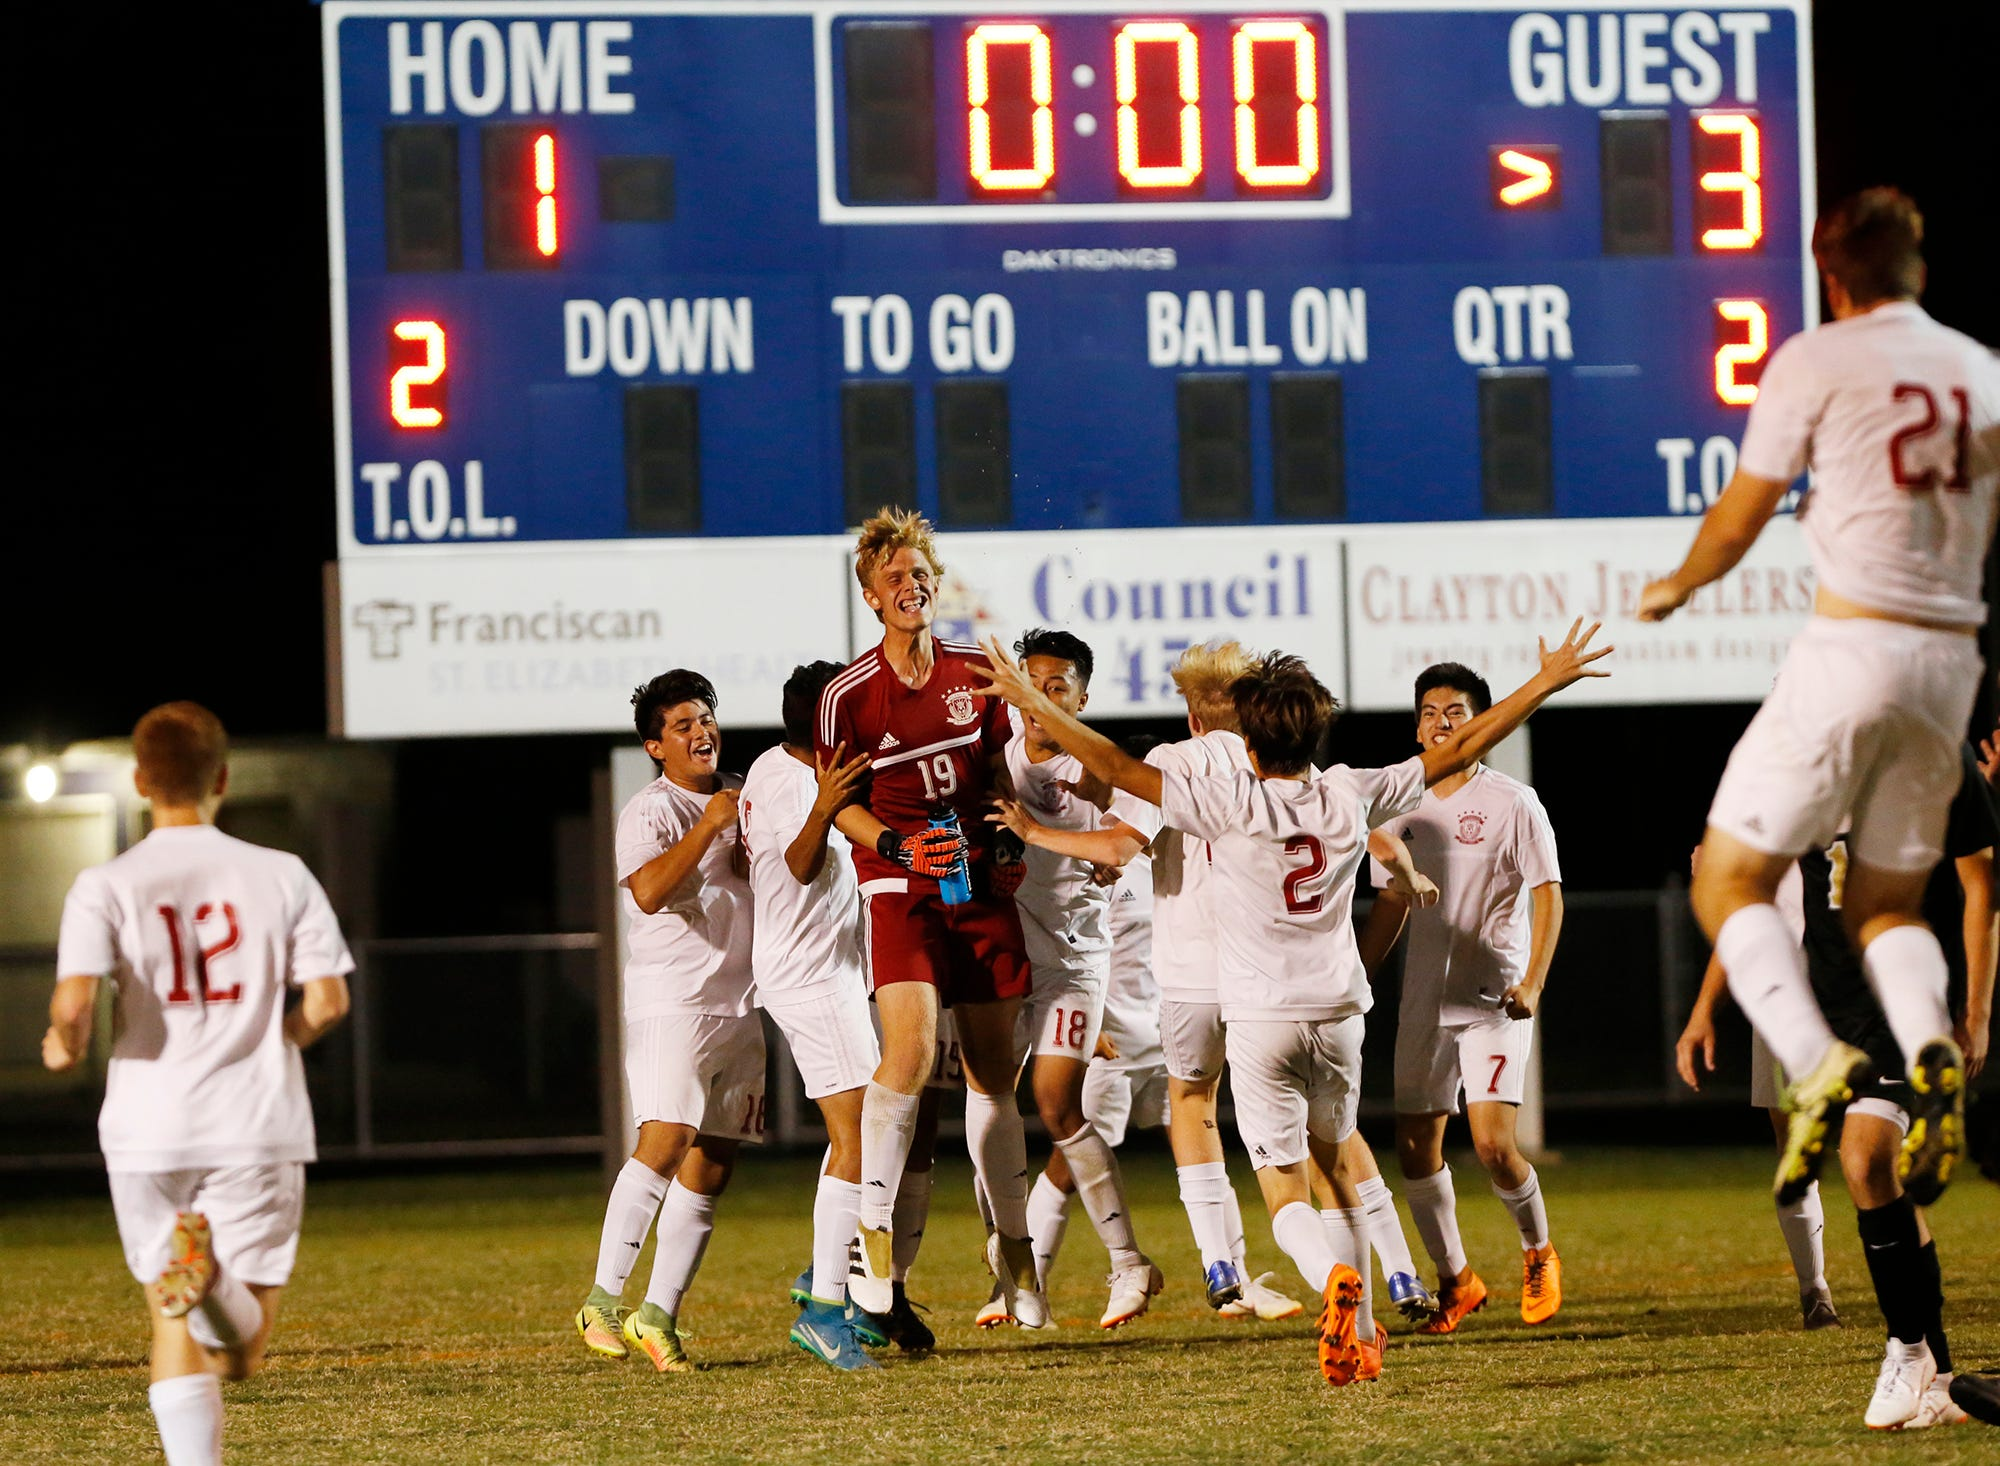 Laf Faith Defeats Delphi To Win Boys Soccer Sectional